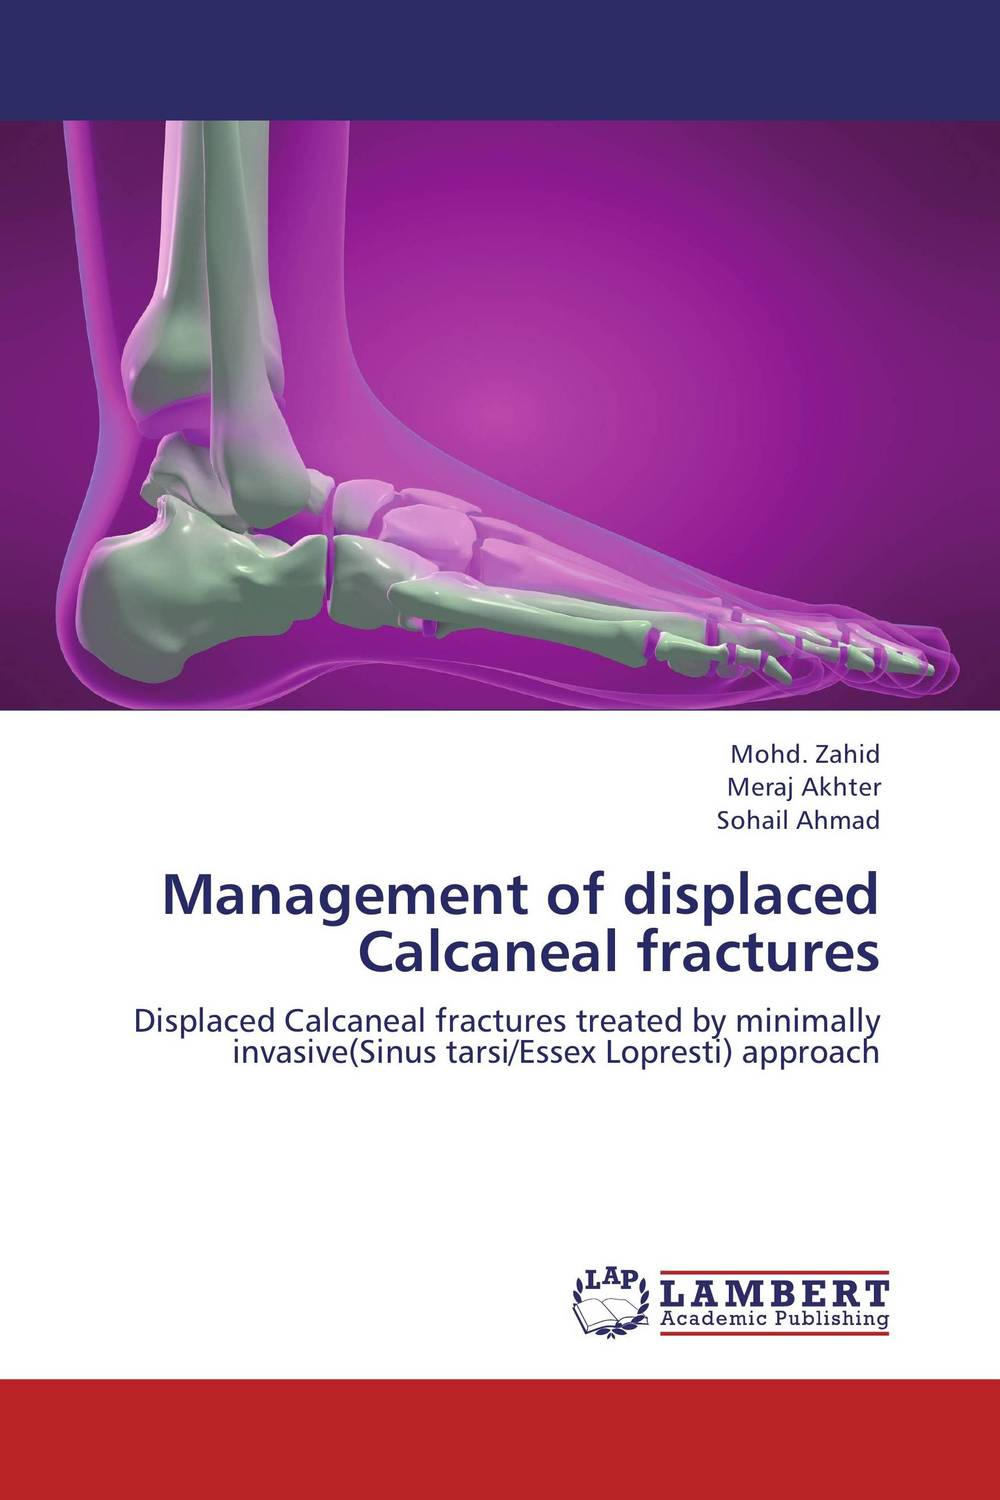 Management of displaced Calcaneal fractures rakesh kumar tiwari and rajendra prasad ojha conformation and stability of mixed dna triplex